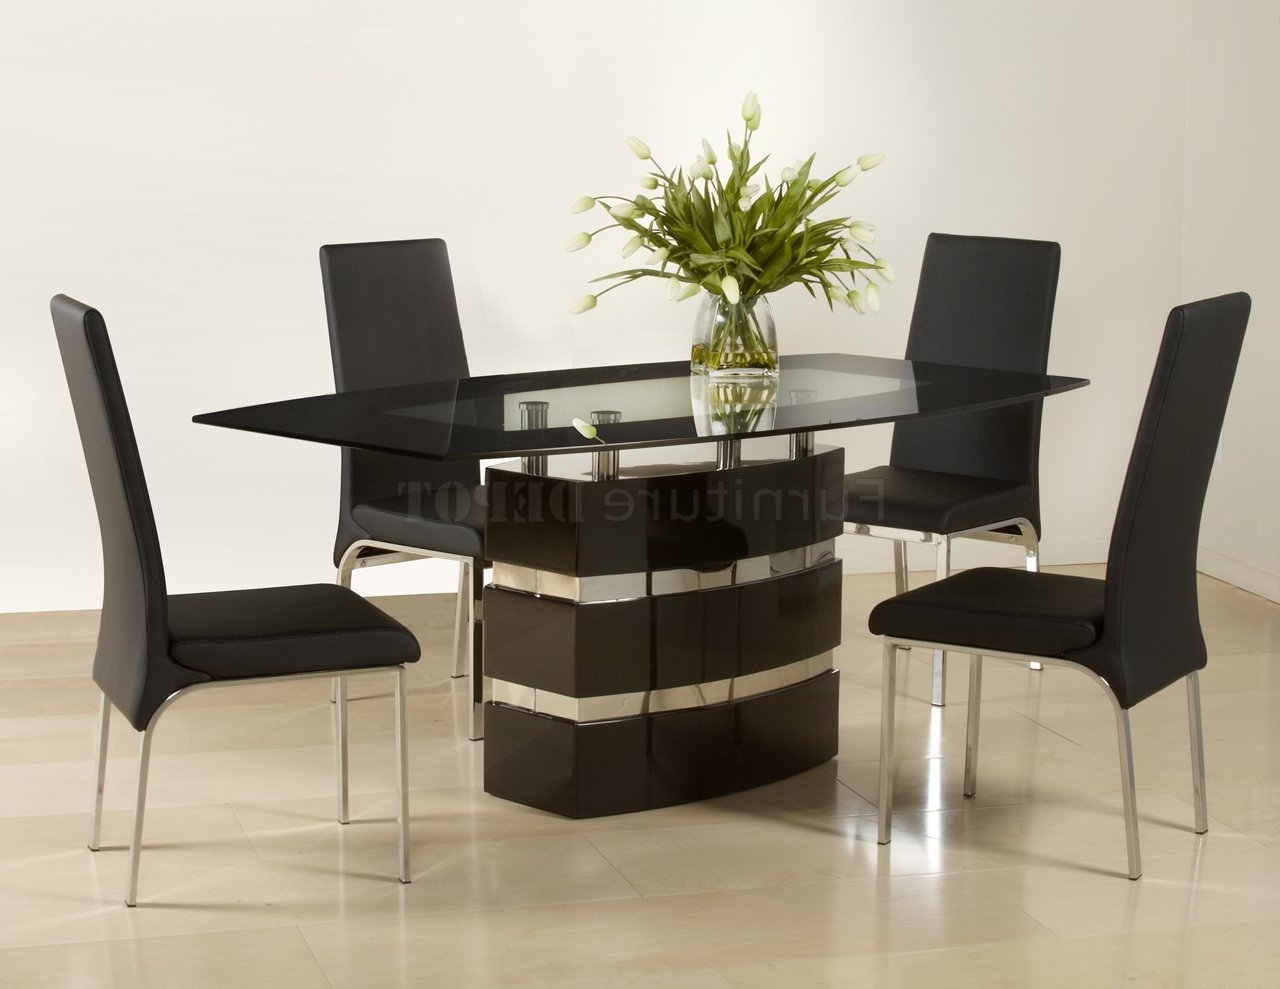 Popular Photos: Black High Gloss Finish Modern Dining Table Woptional Chairs Regarding Black High Gloss Dining Tables (View 14 of 25)